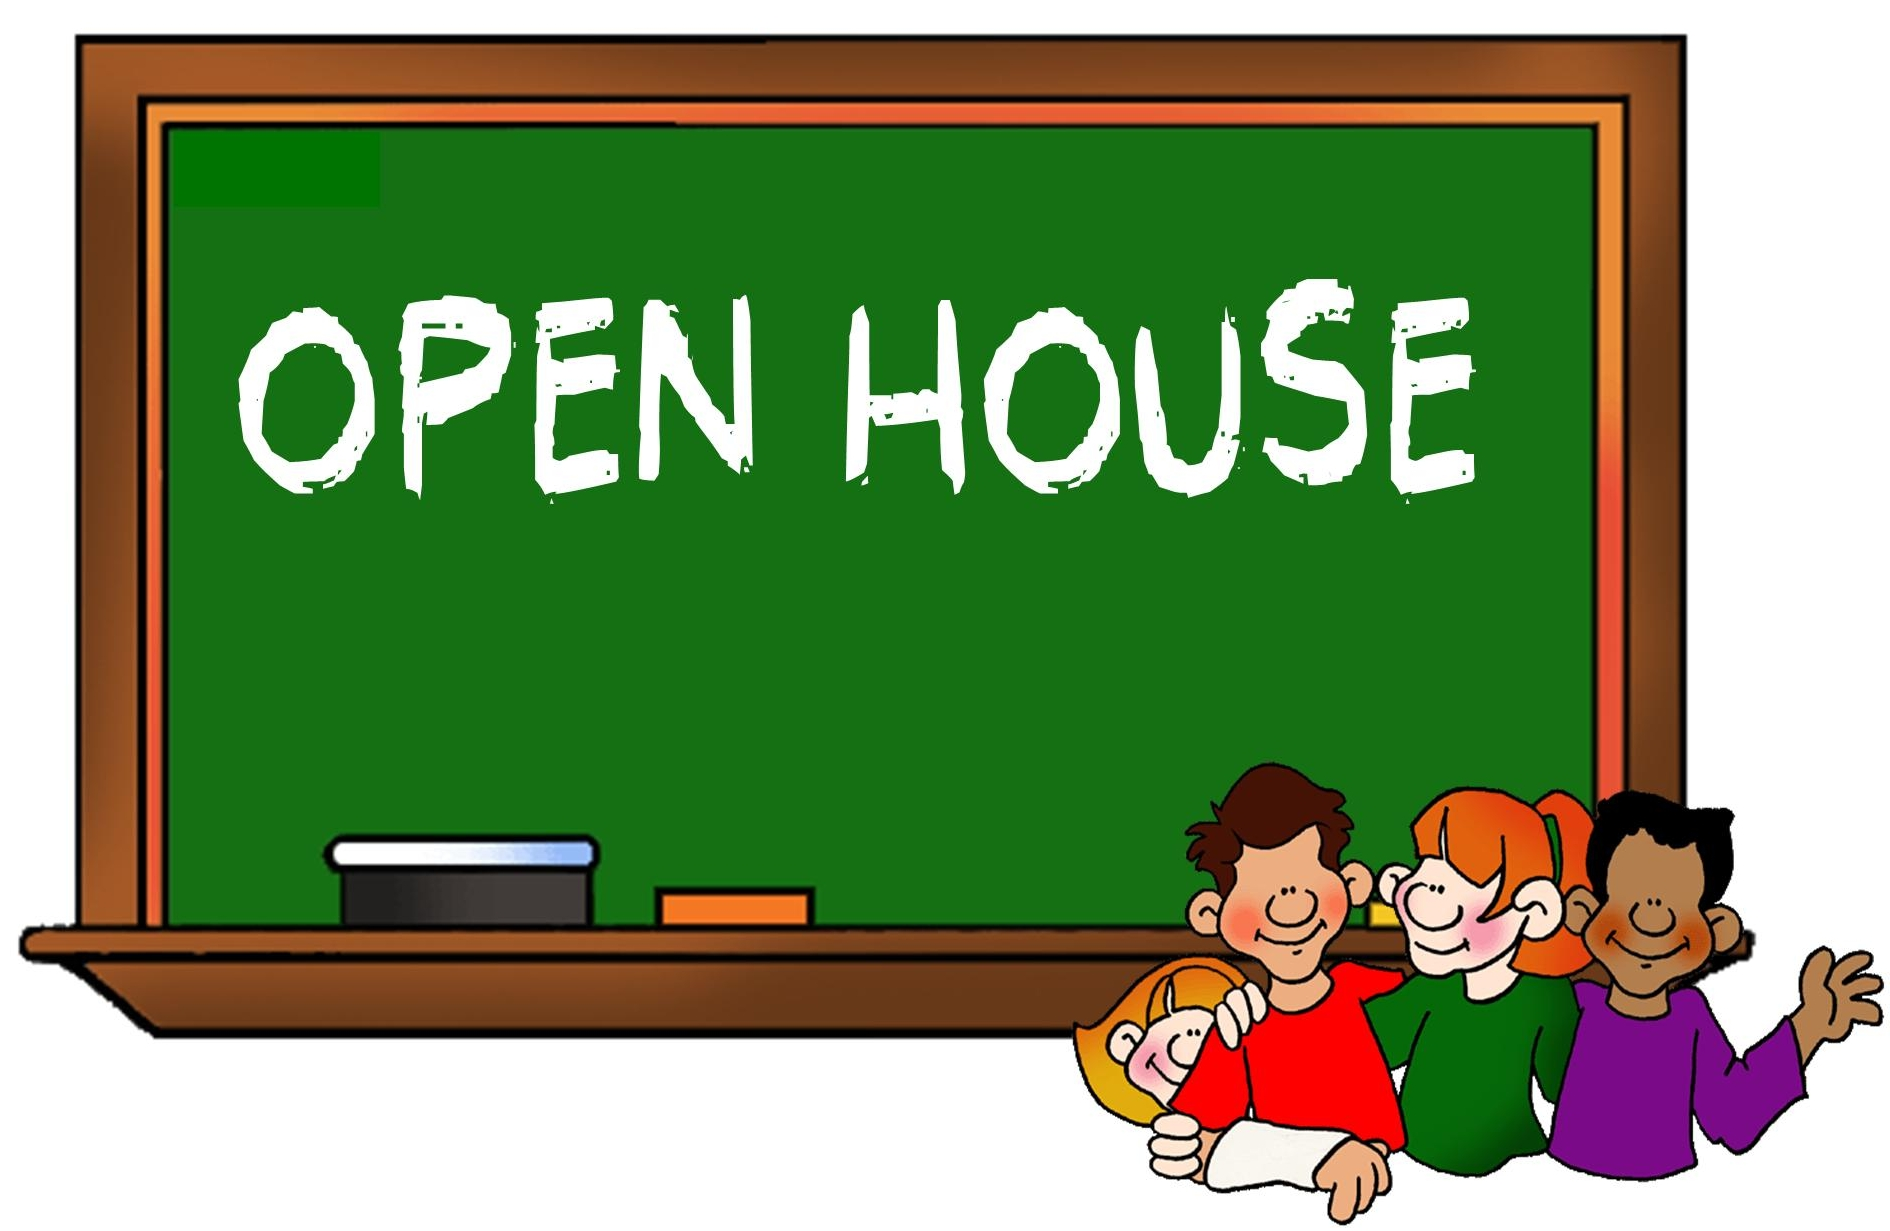 Open House 2019  TDB 4:00 pm - 7:00 pm